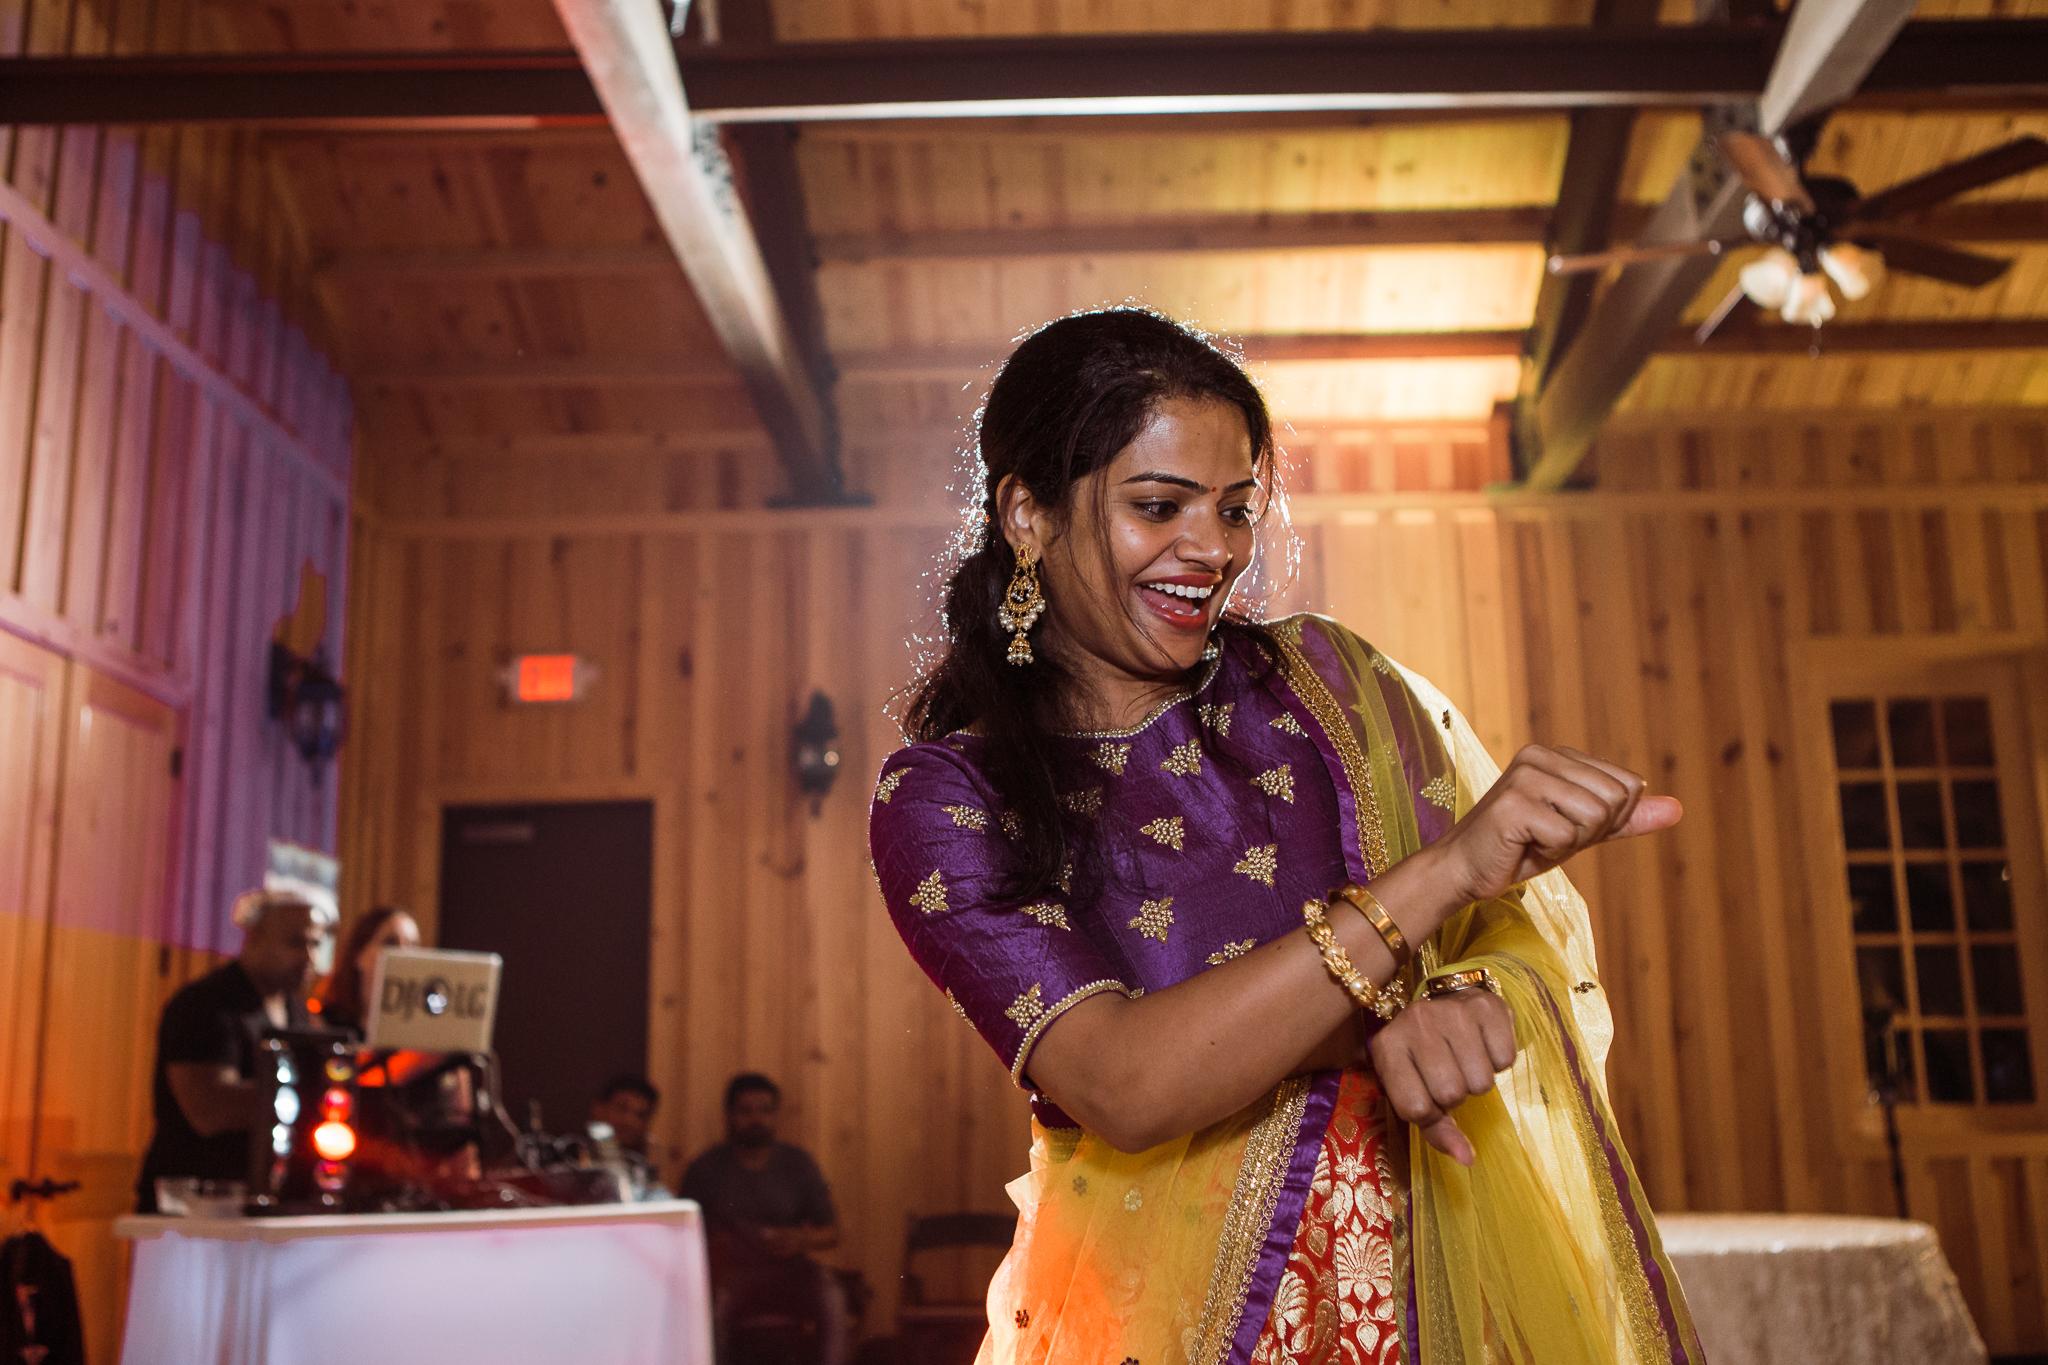 Keerthi and Kishore - Indian Wedding - elizalde photography - Dallas Photographer - South Asian Wedding Photographer - The SPRINGS Event Venue (198 of 226).jpg